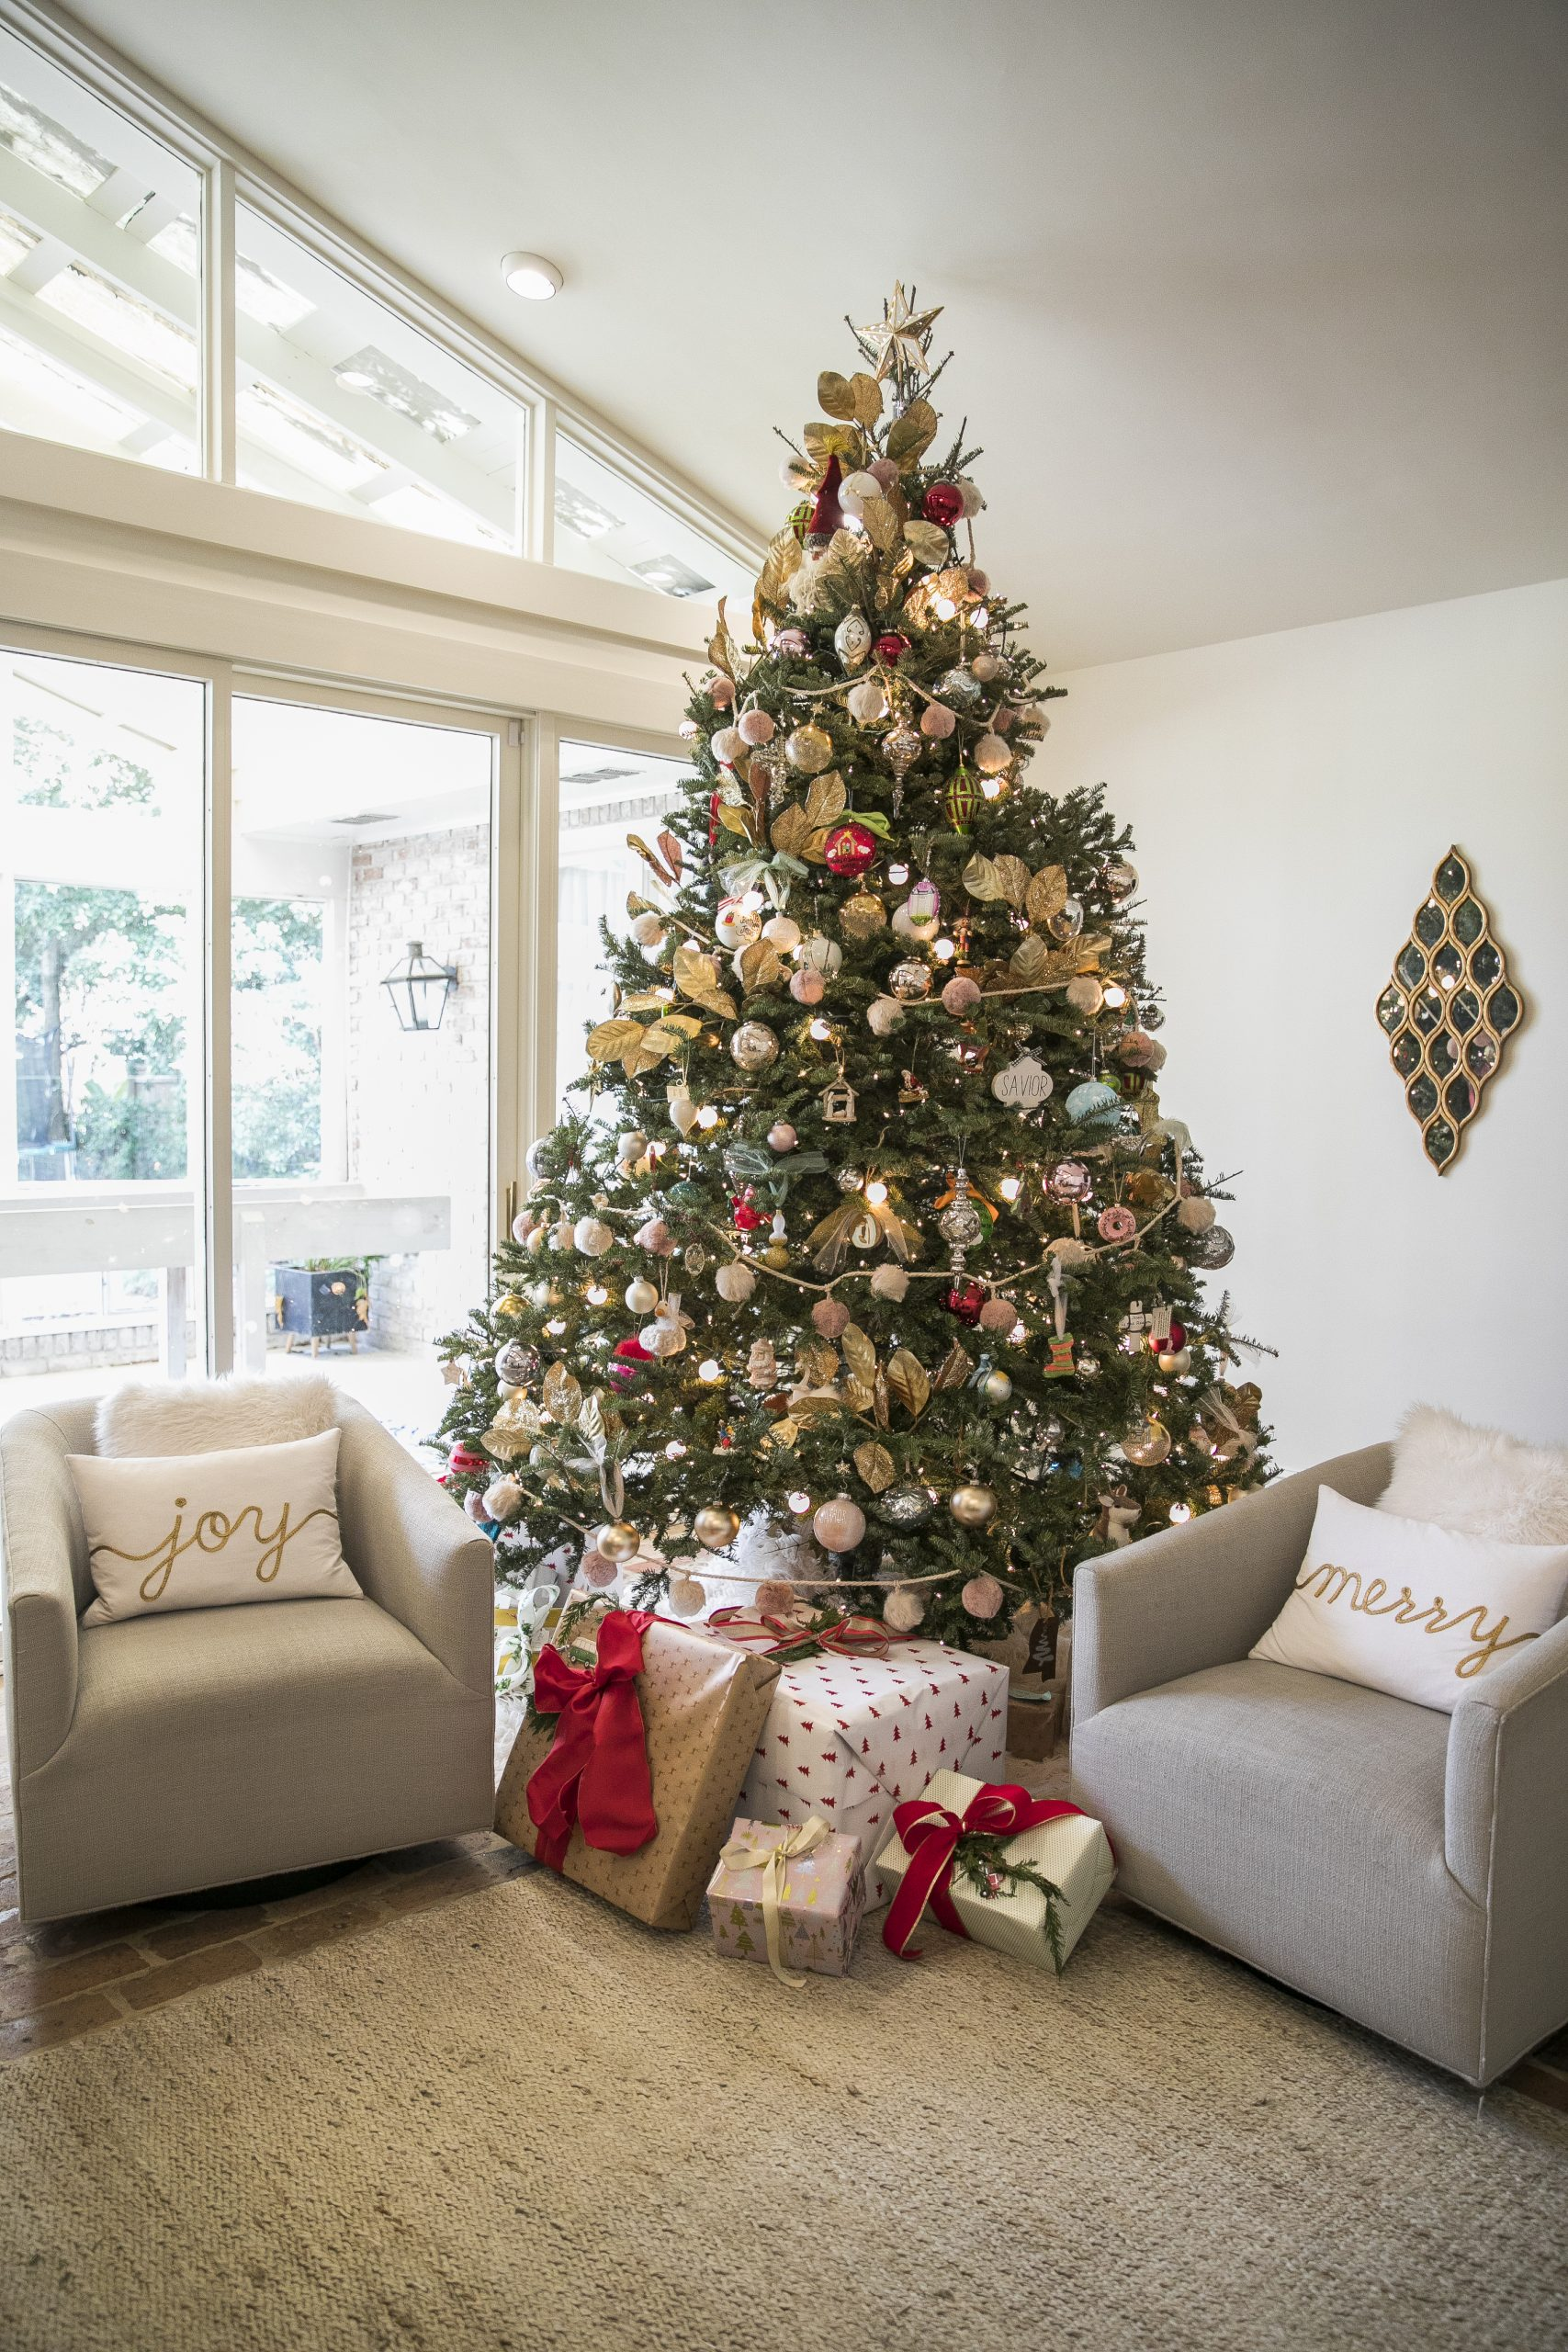 Chateau Chic Christmas House 2 2019  (Misty Leigh McElroy) 12/23/19